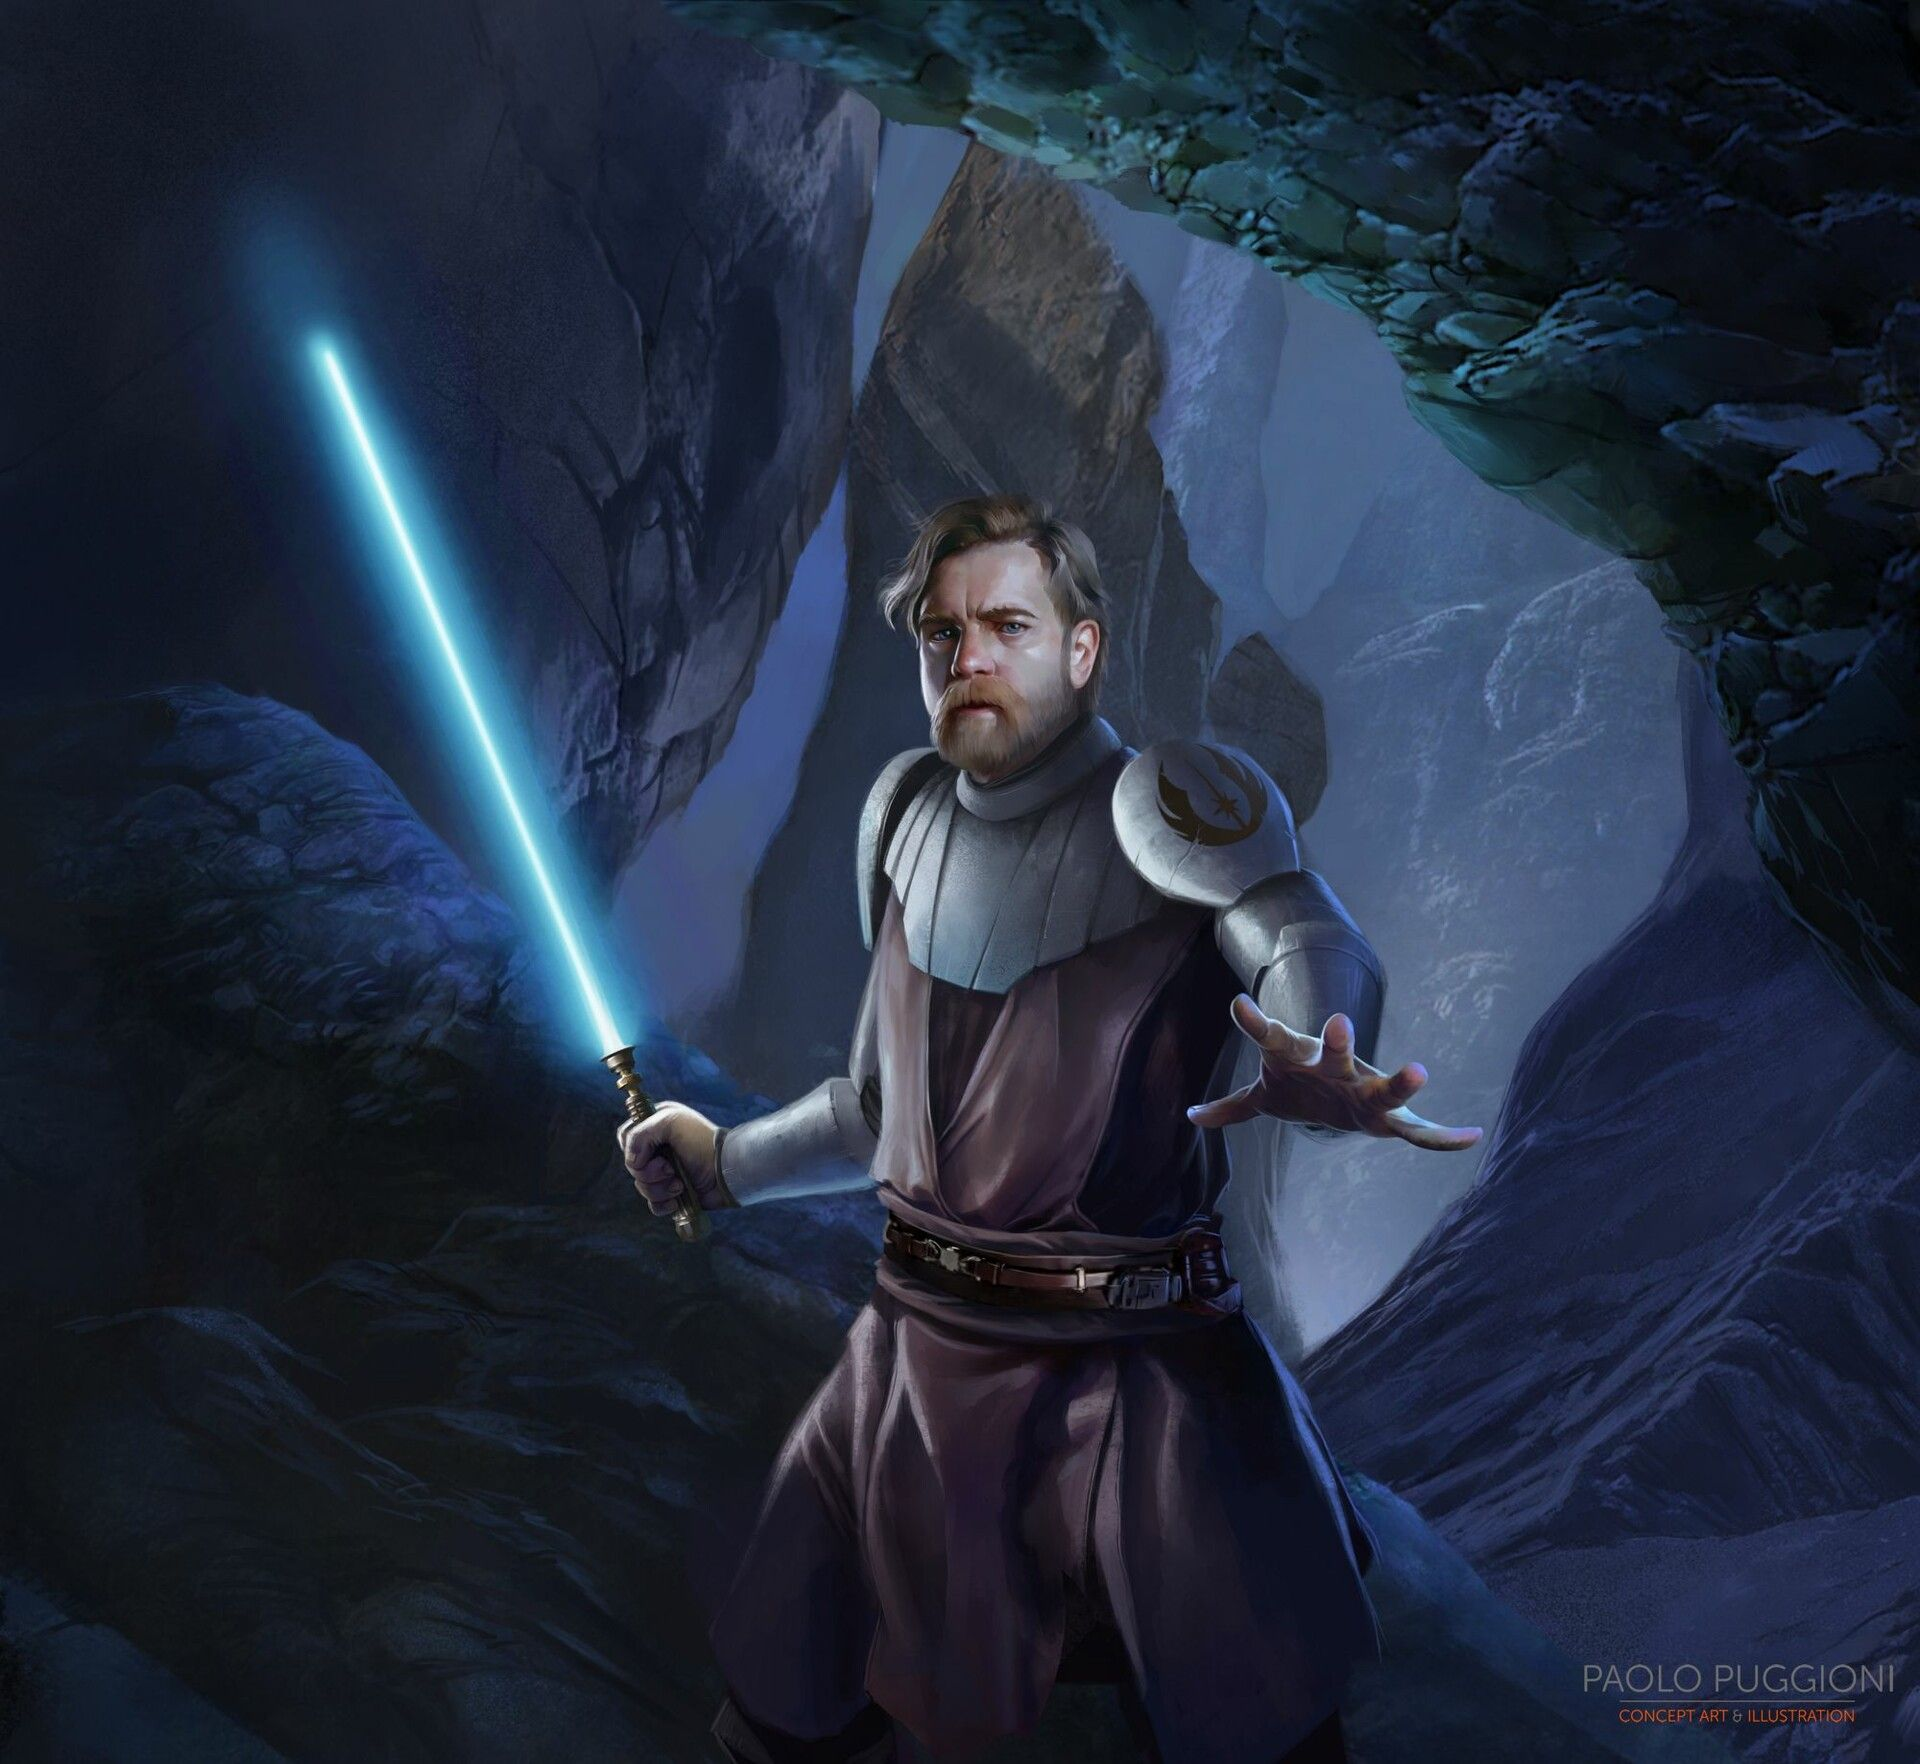 Obi Wan Kenobi Star Wars Obi Wan Star Wars Images Star Wars